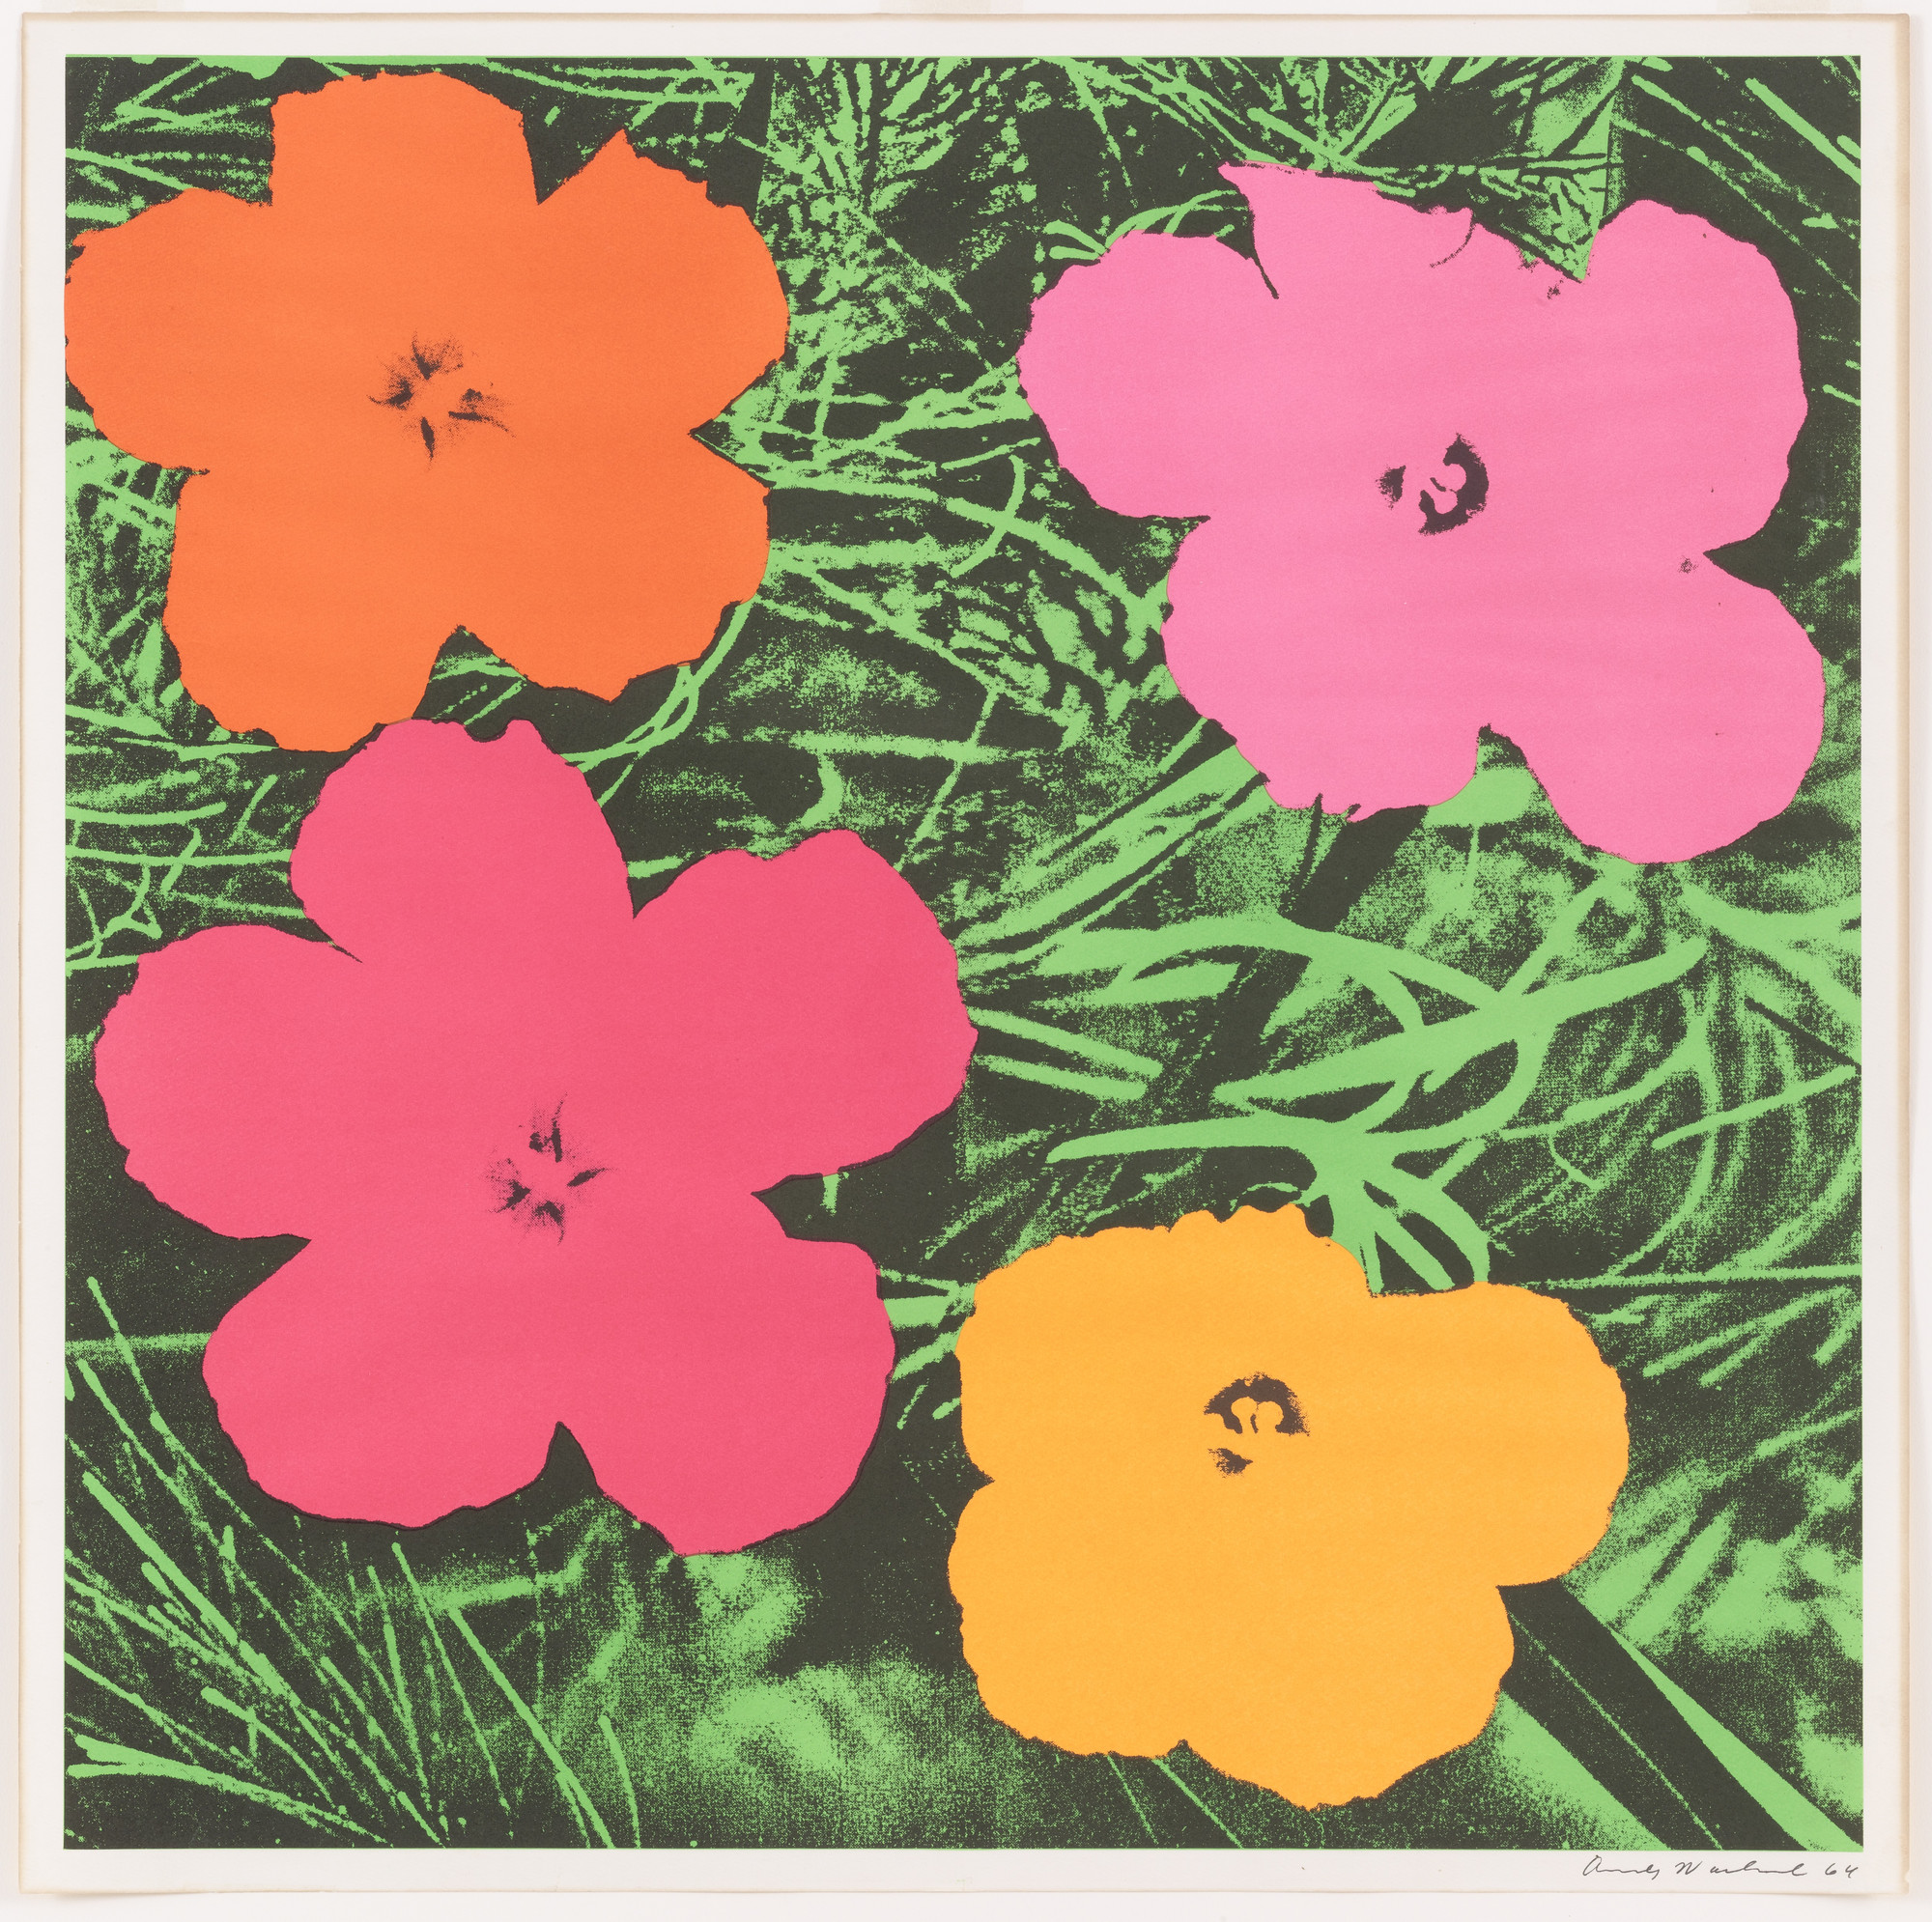 Andy Warhol Flowers 1964 Moma